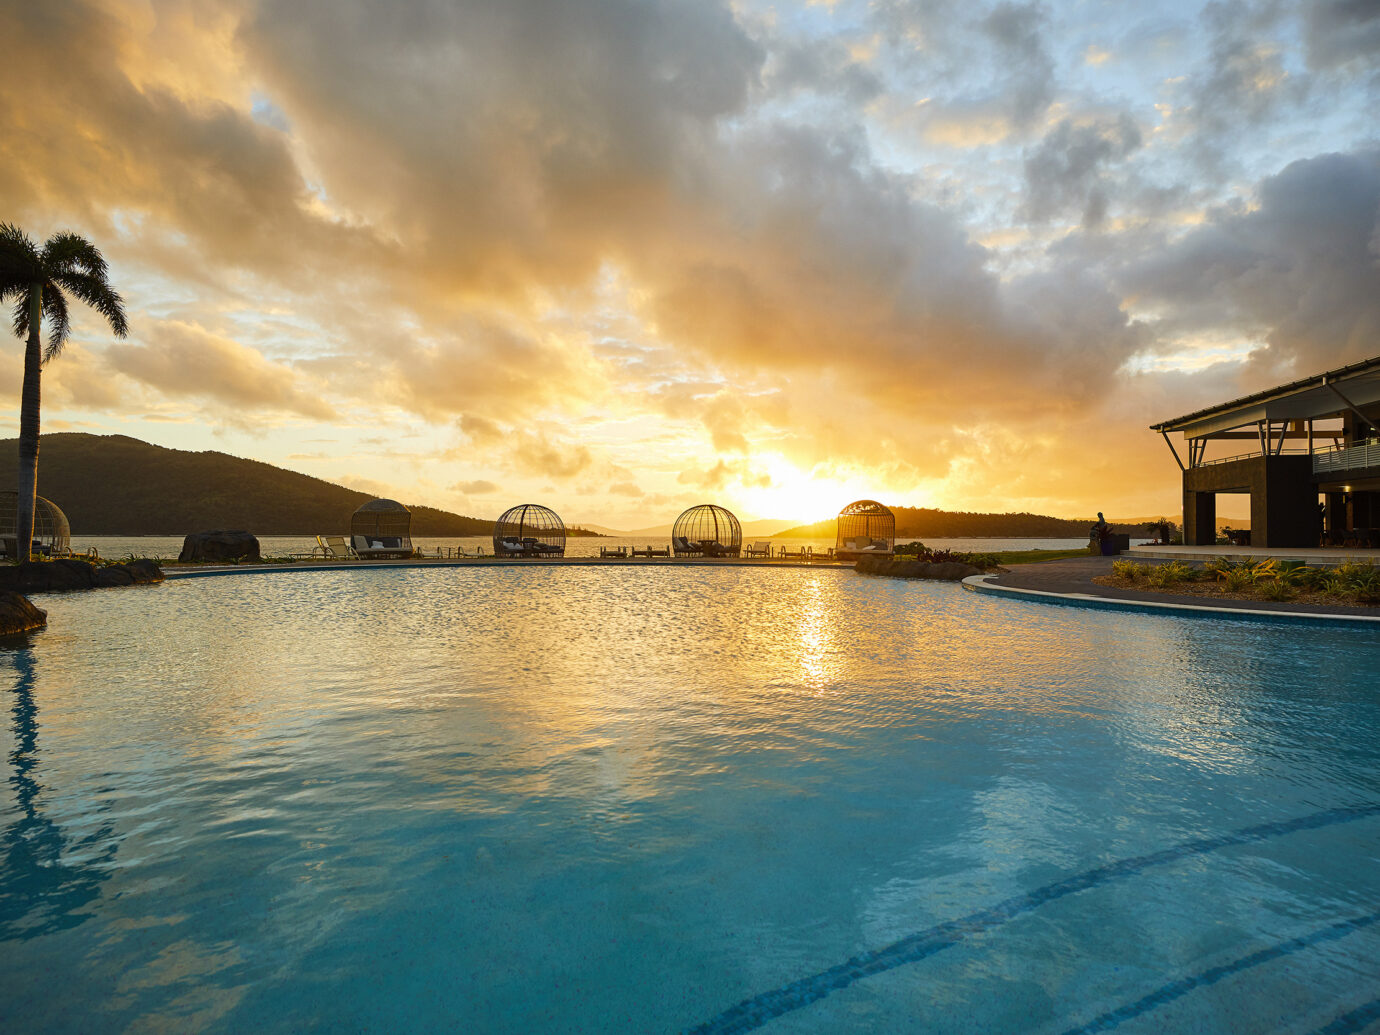 Pool at sunset at Daydream Island